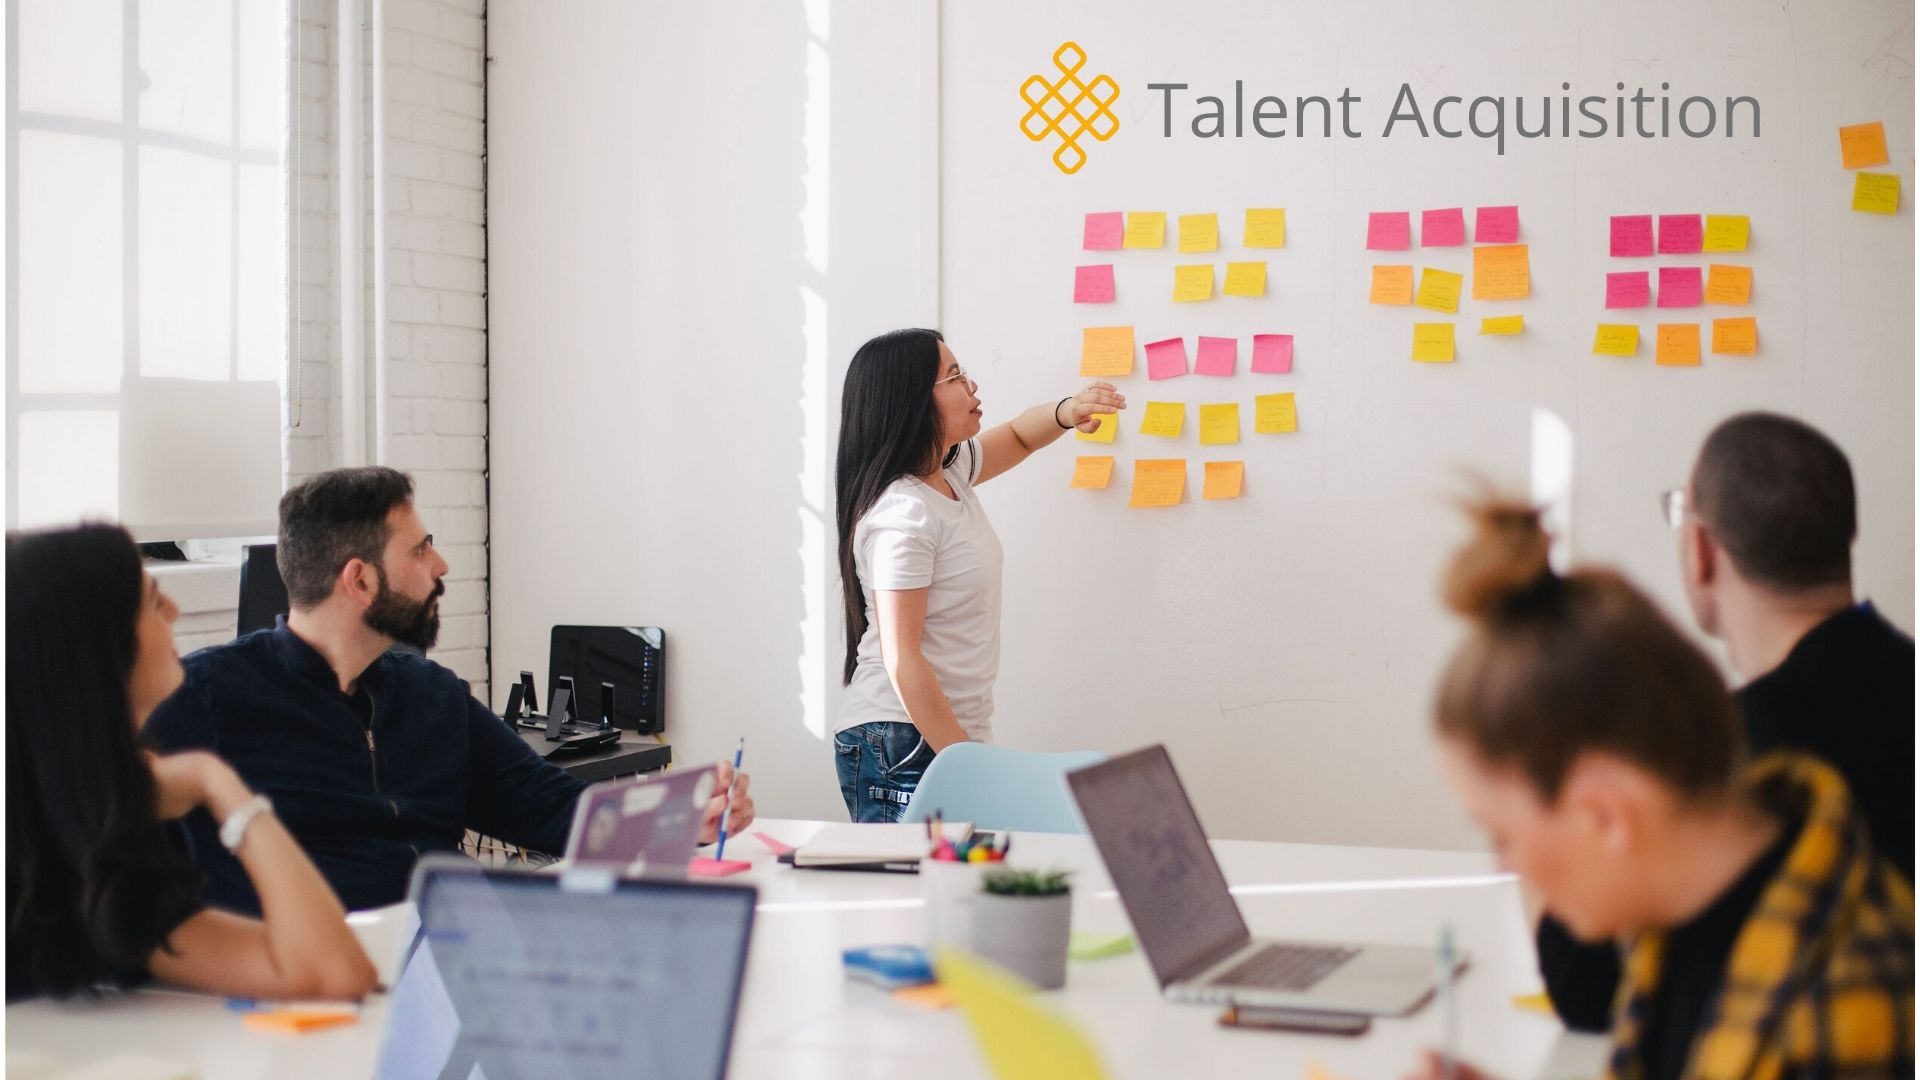 A team meeting with a woman standing in front of a white board entitled Talent Acquisition